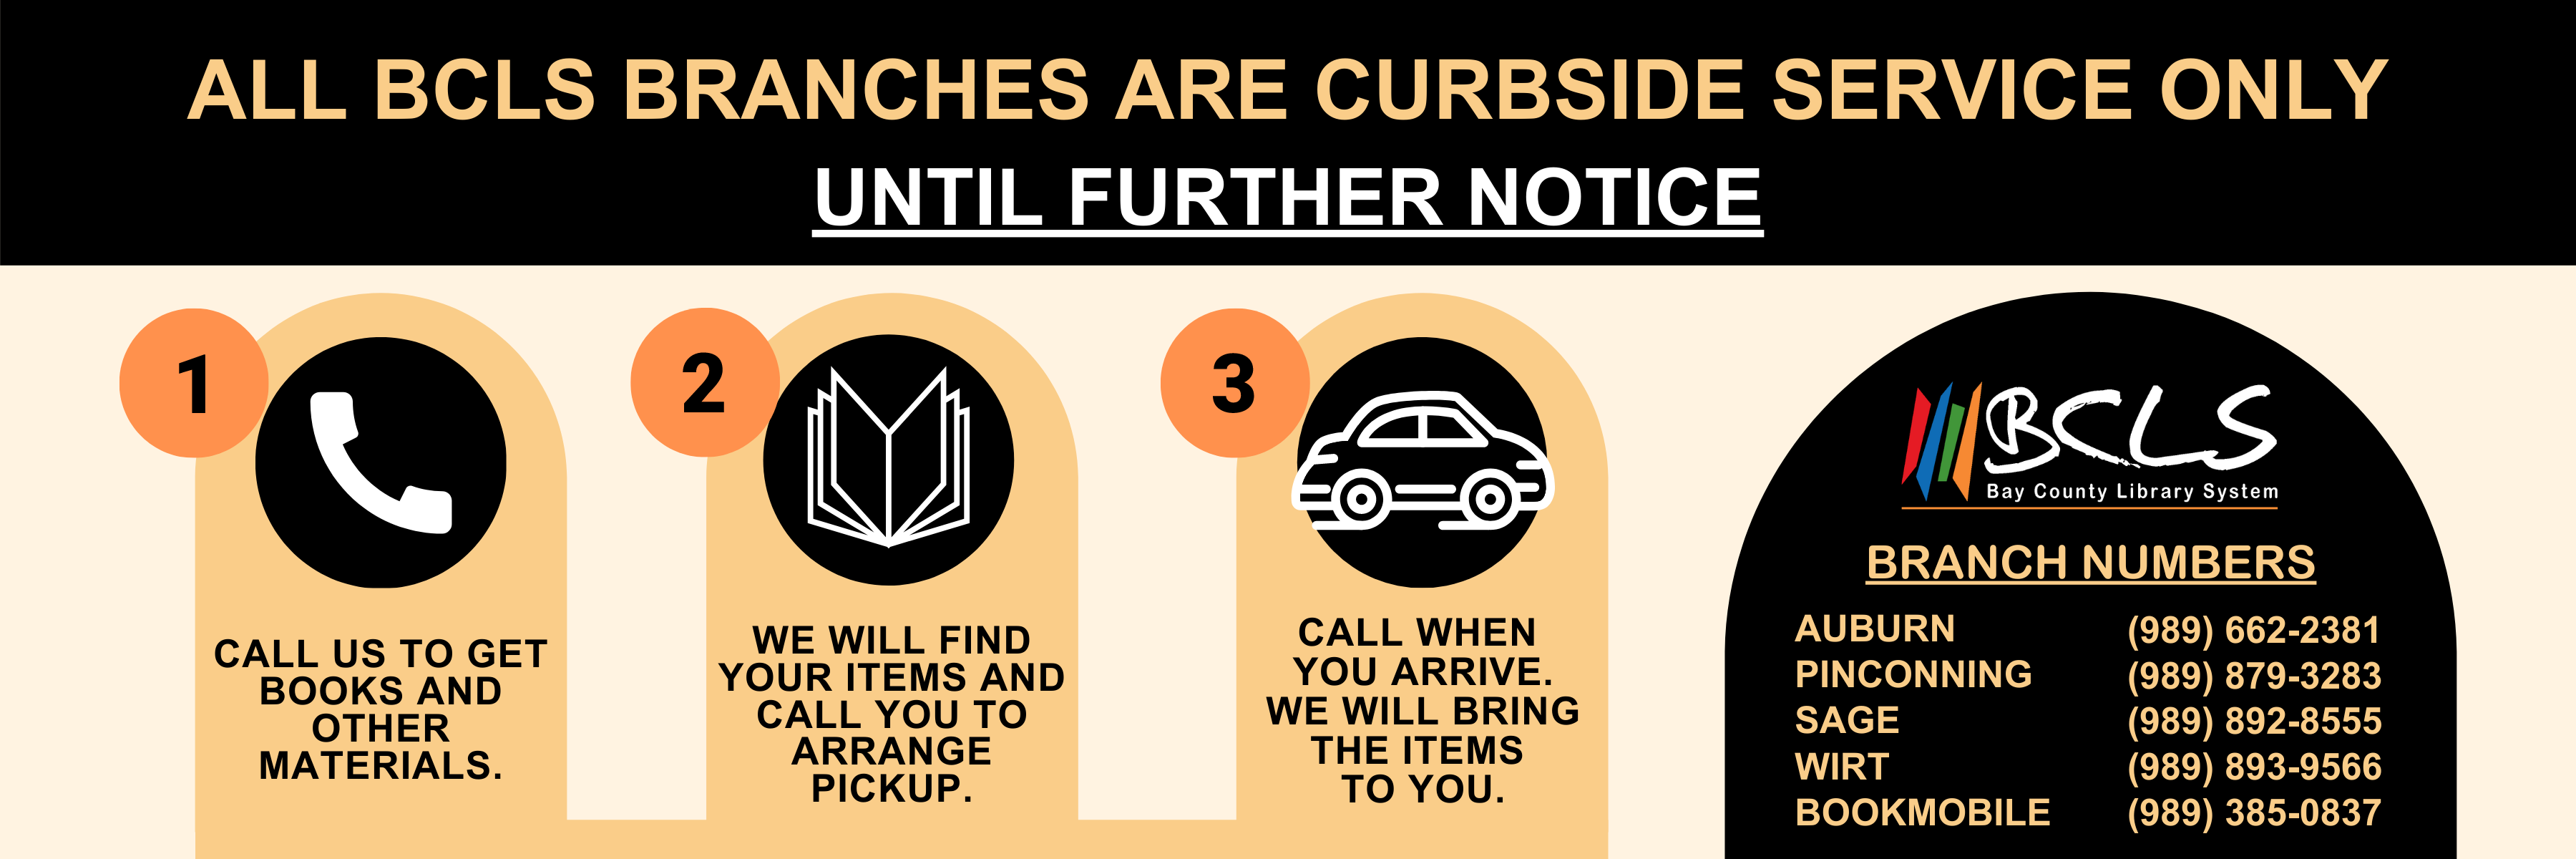 Curbside only until further notice